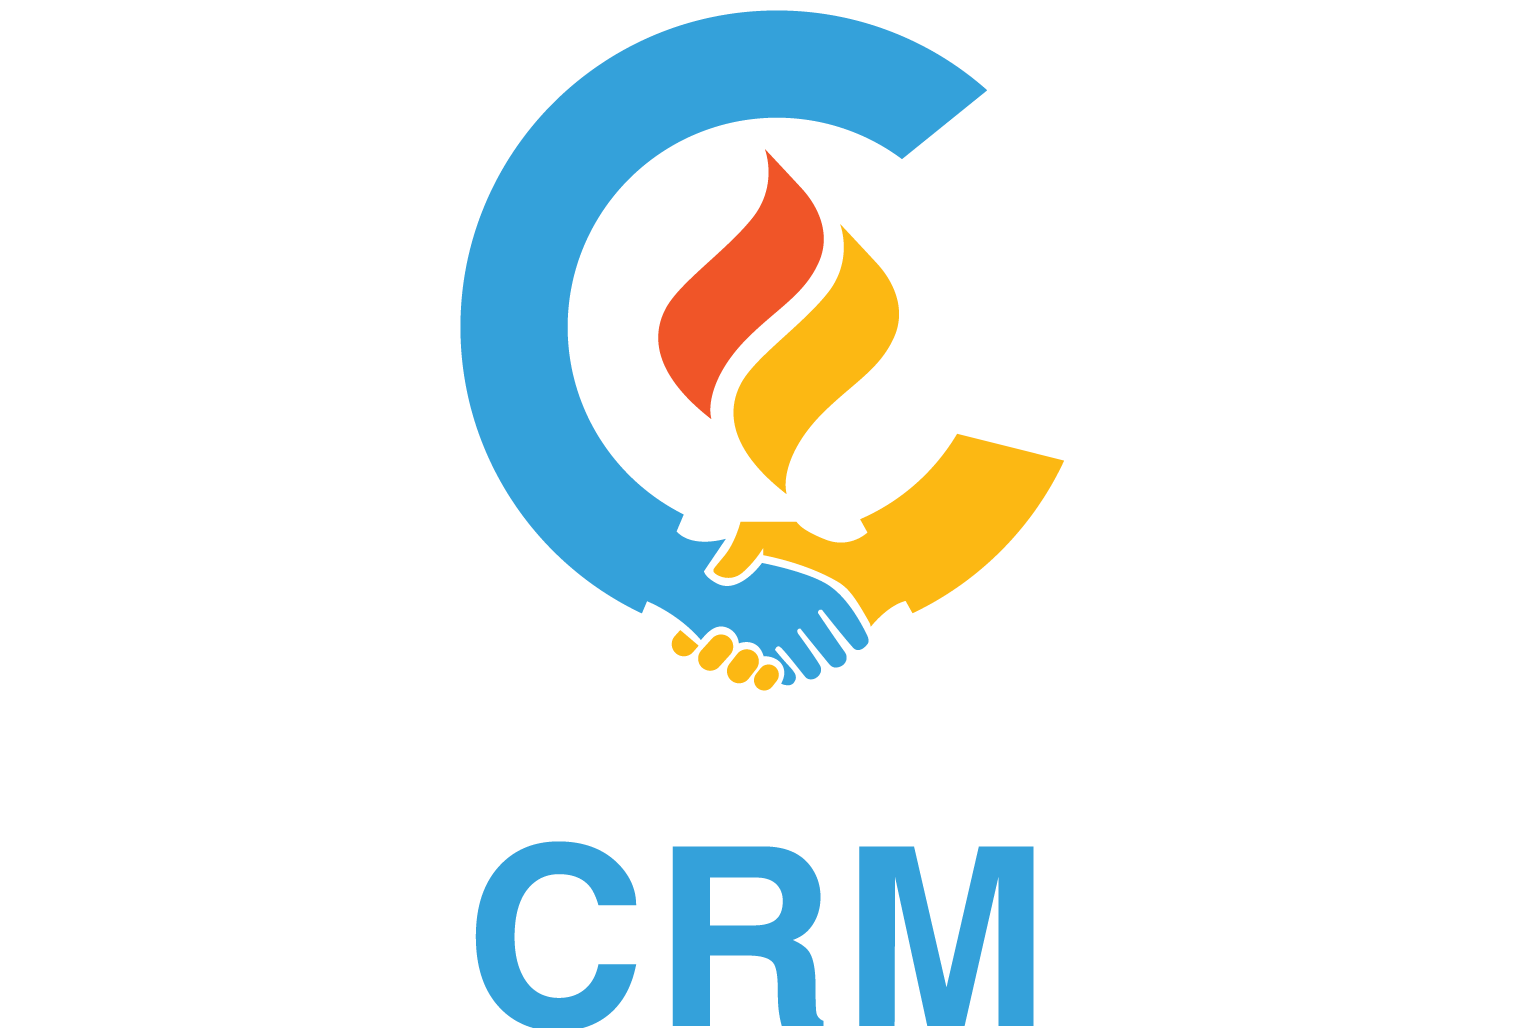 BSC CRM